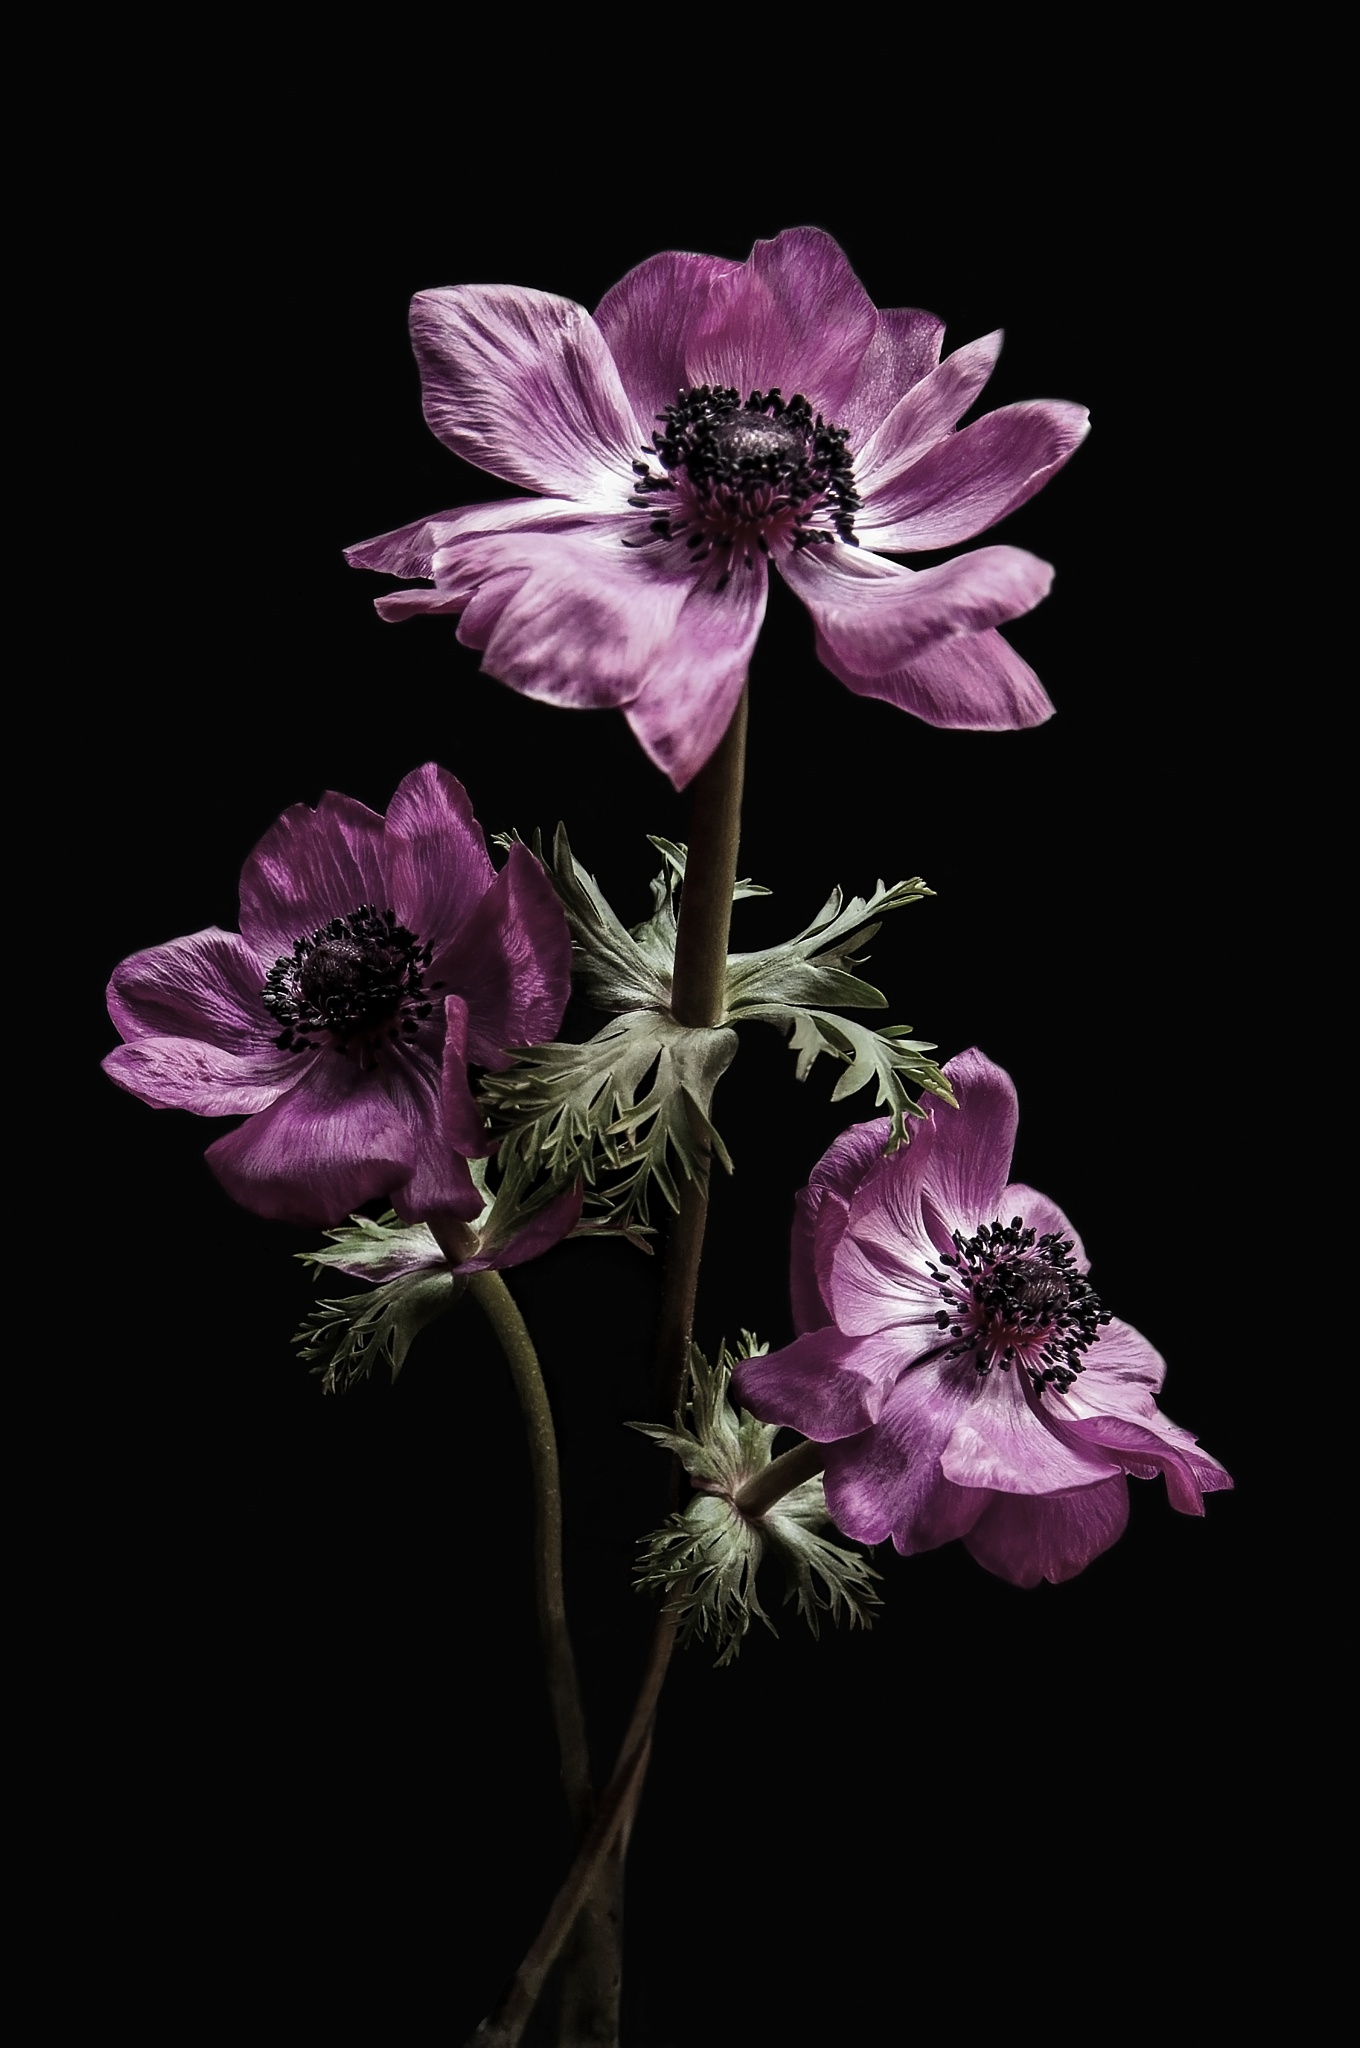 Pink Anemone by Rab Stout